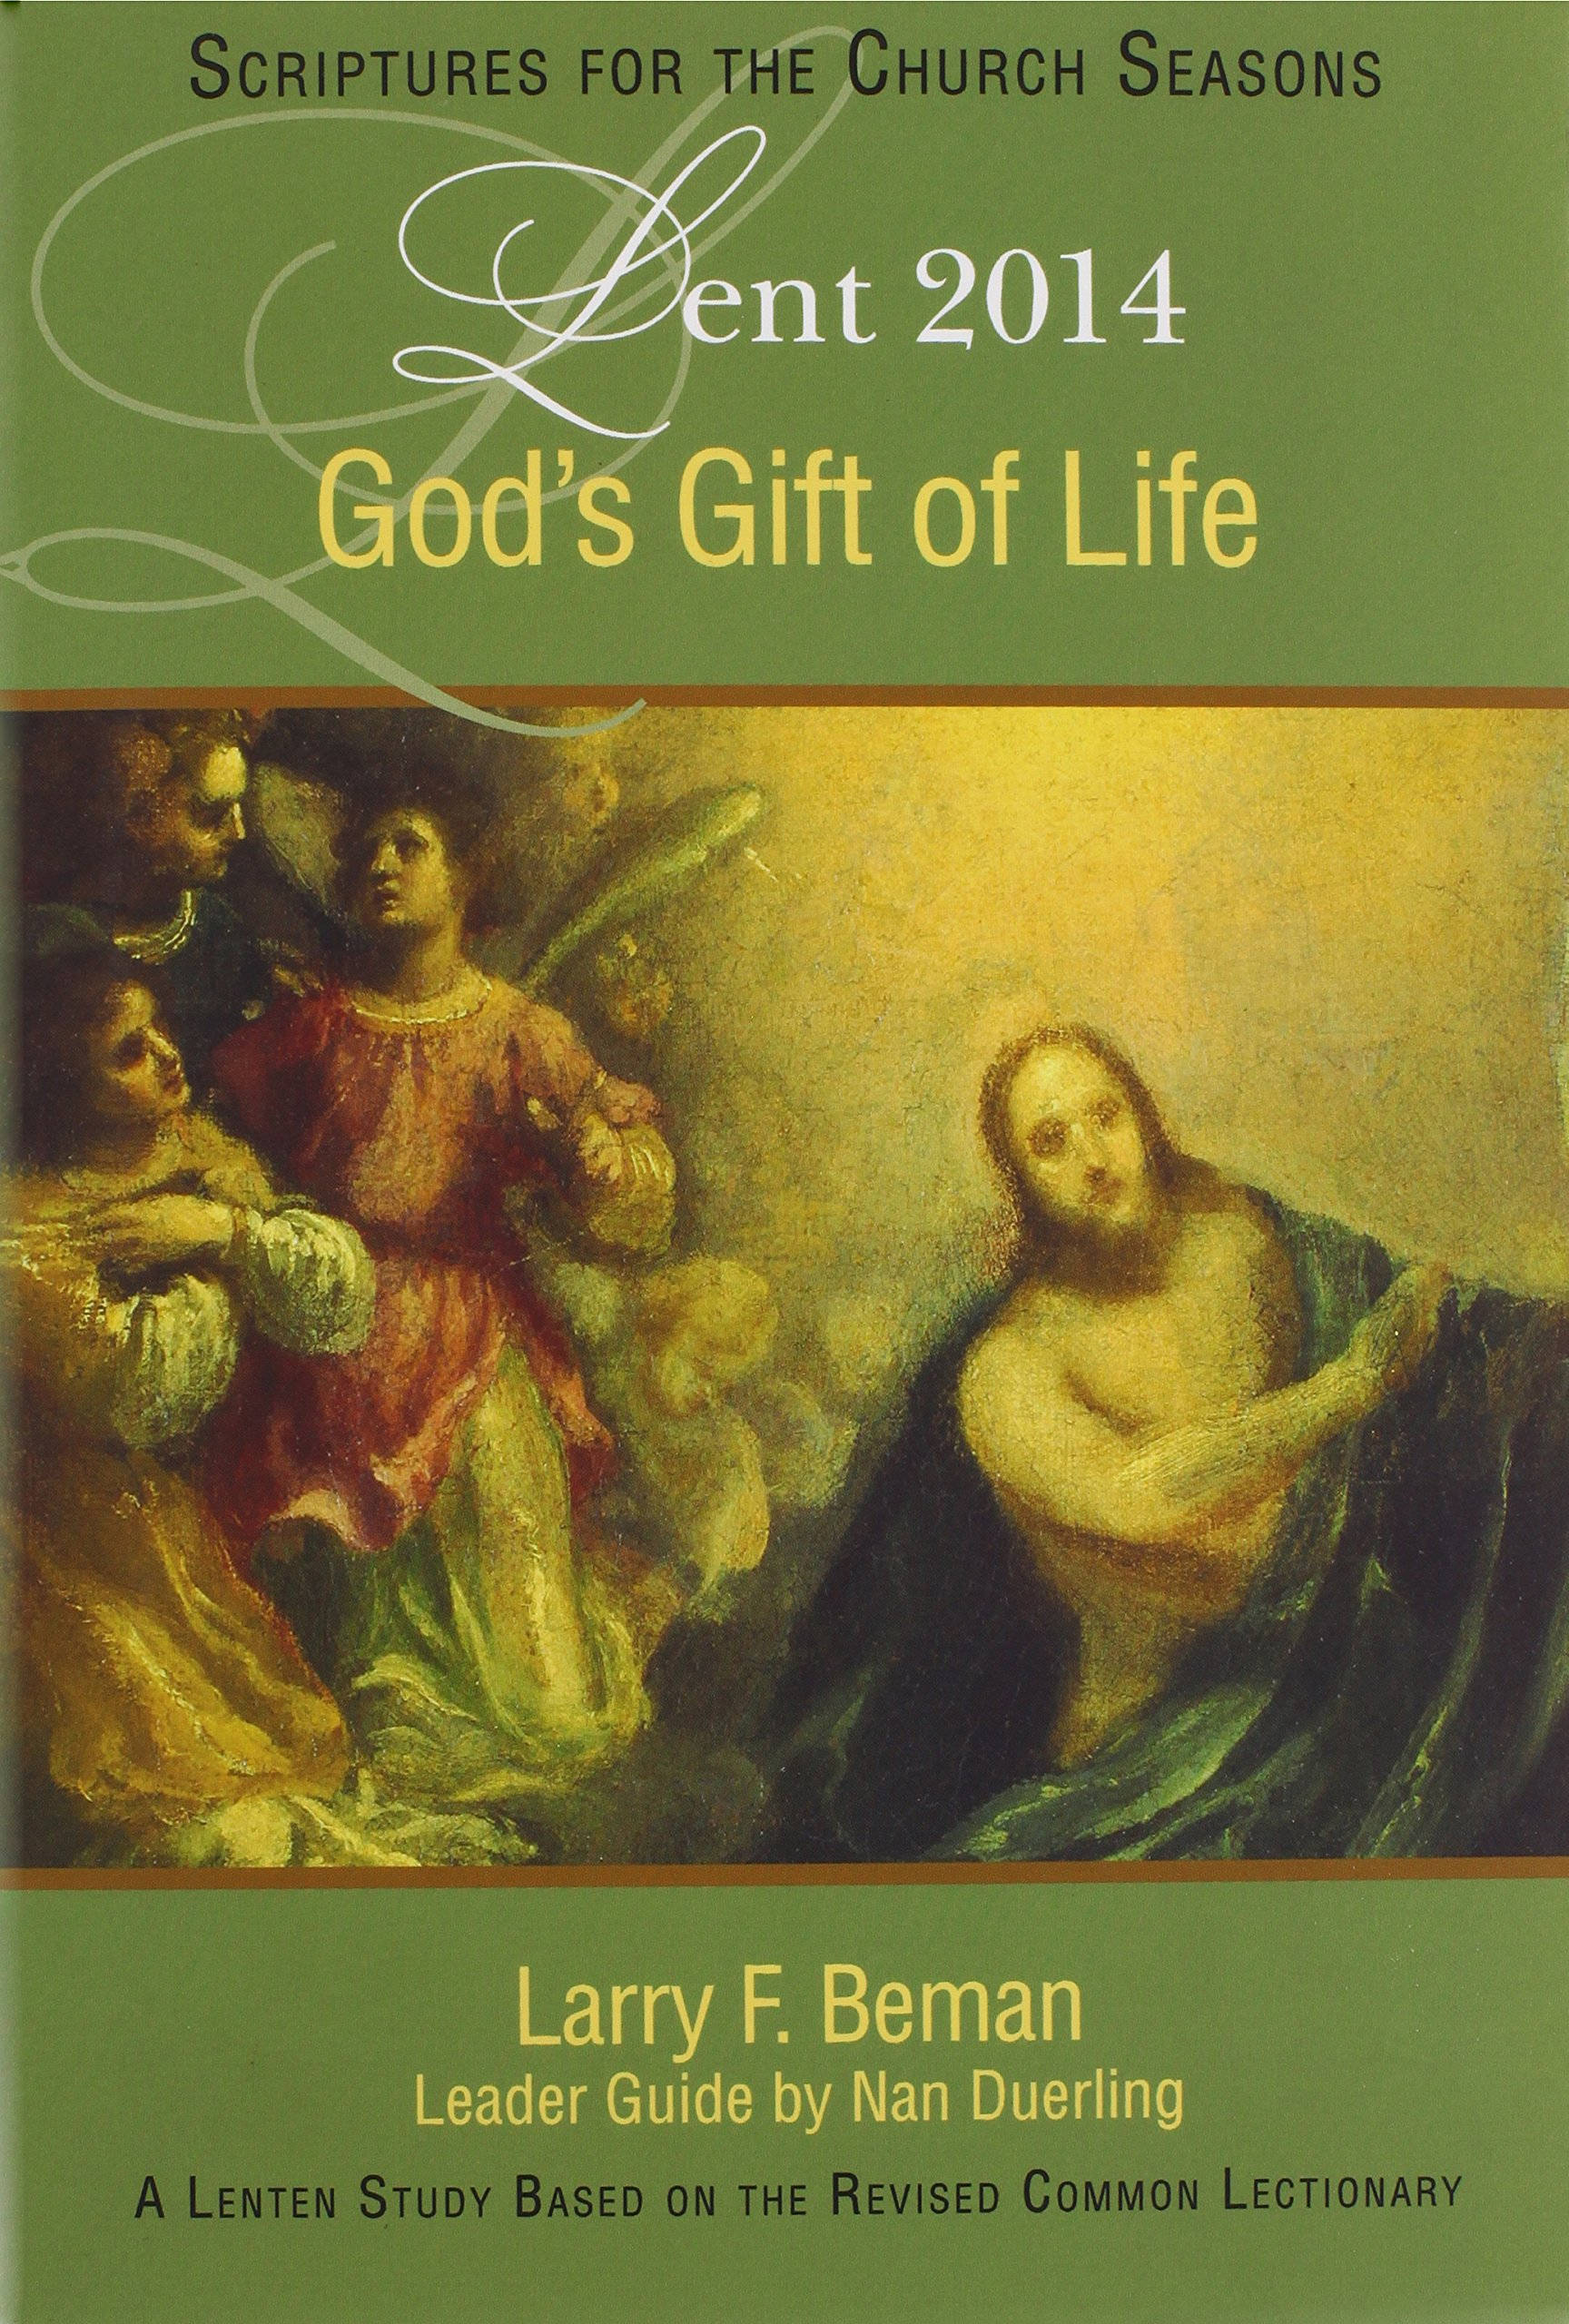 God's Gift of Life: A Lenten Study Based on the Revised Common Lectionary (SFTCS)